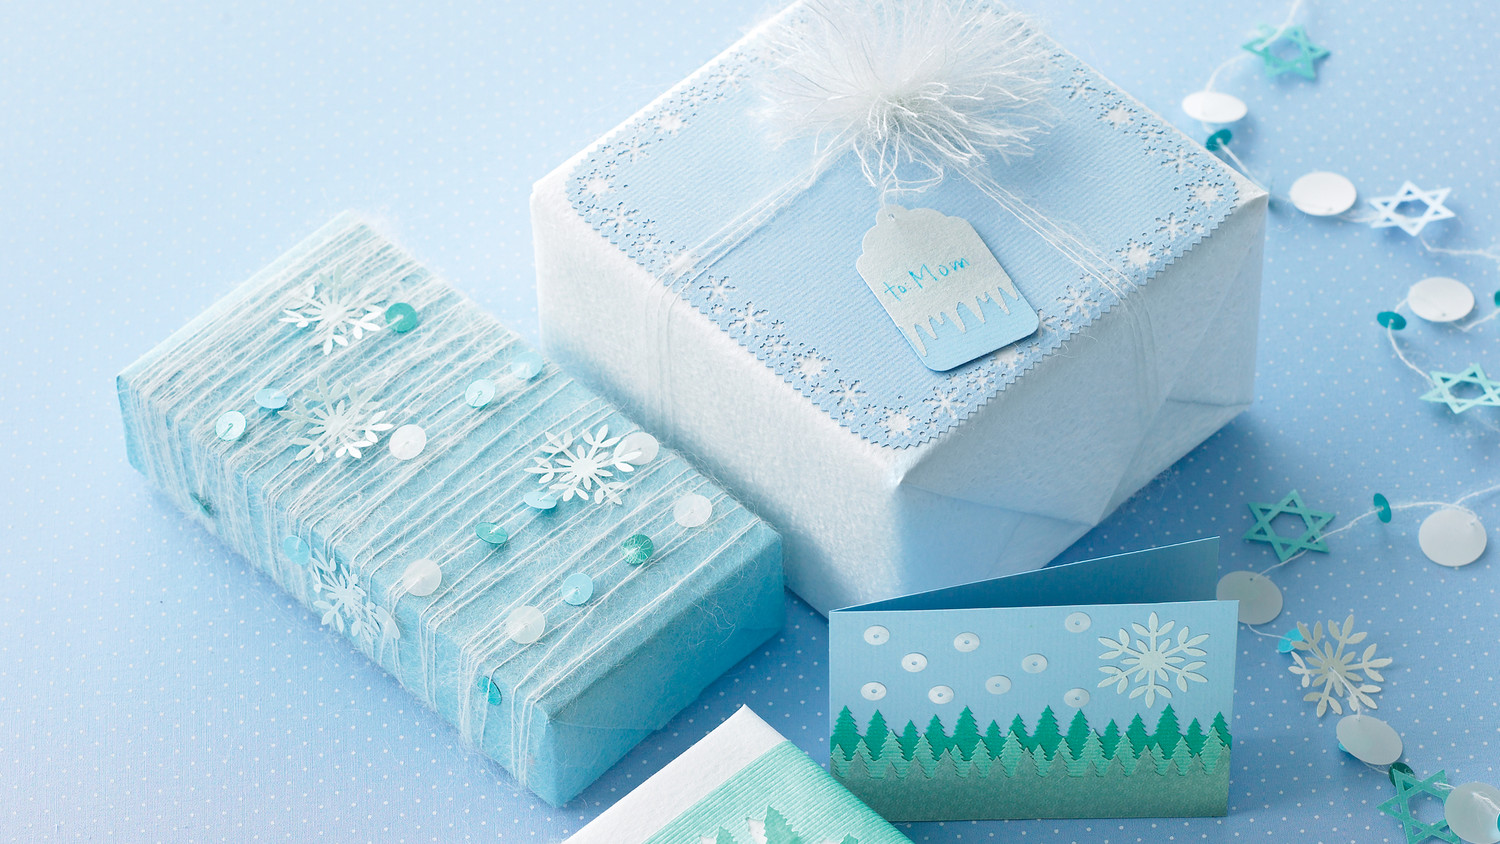 Martha Stewart Wedding Gift Ideas: Gift-Wrapping Ideas